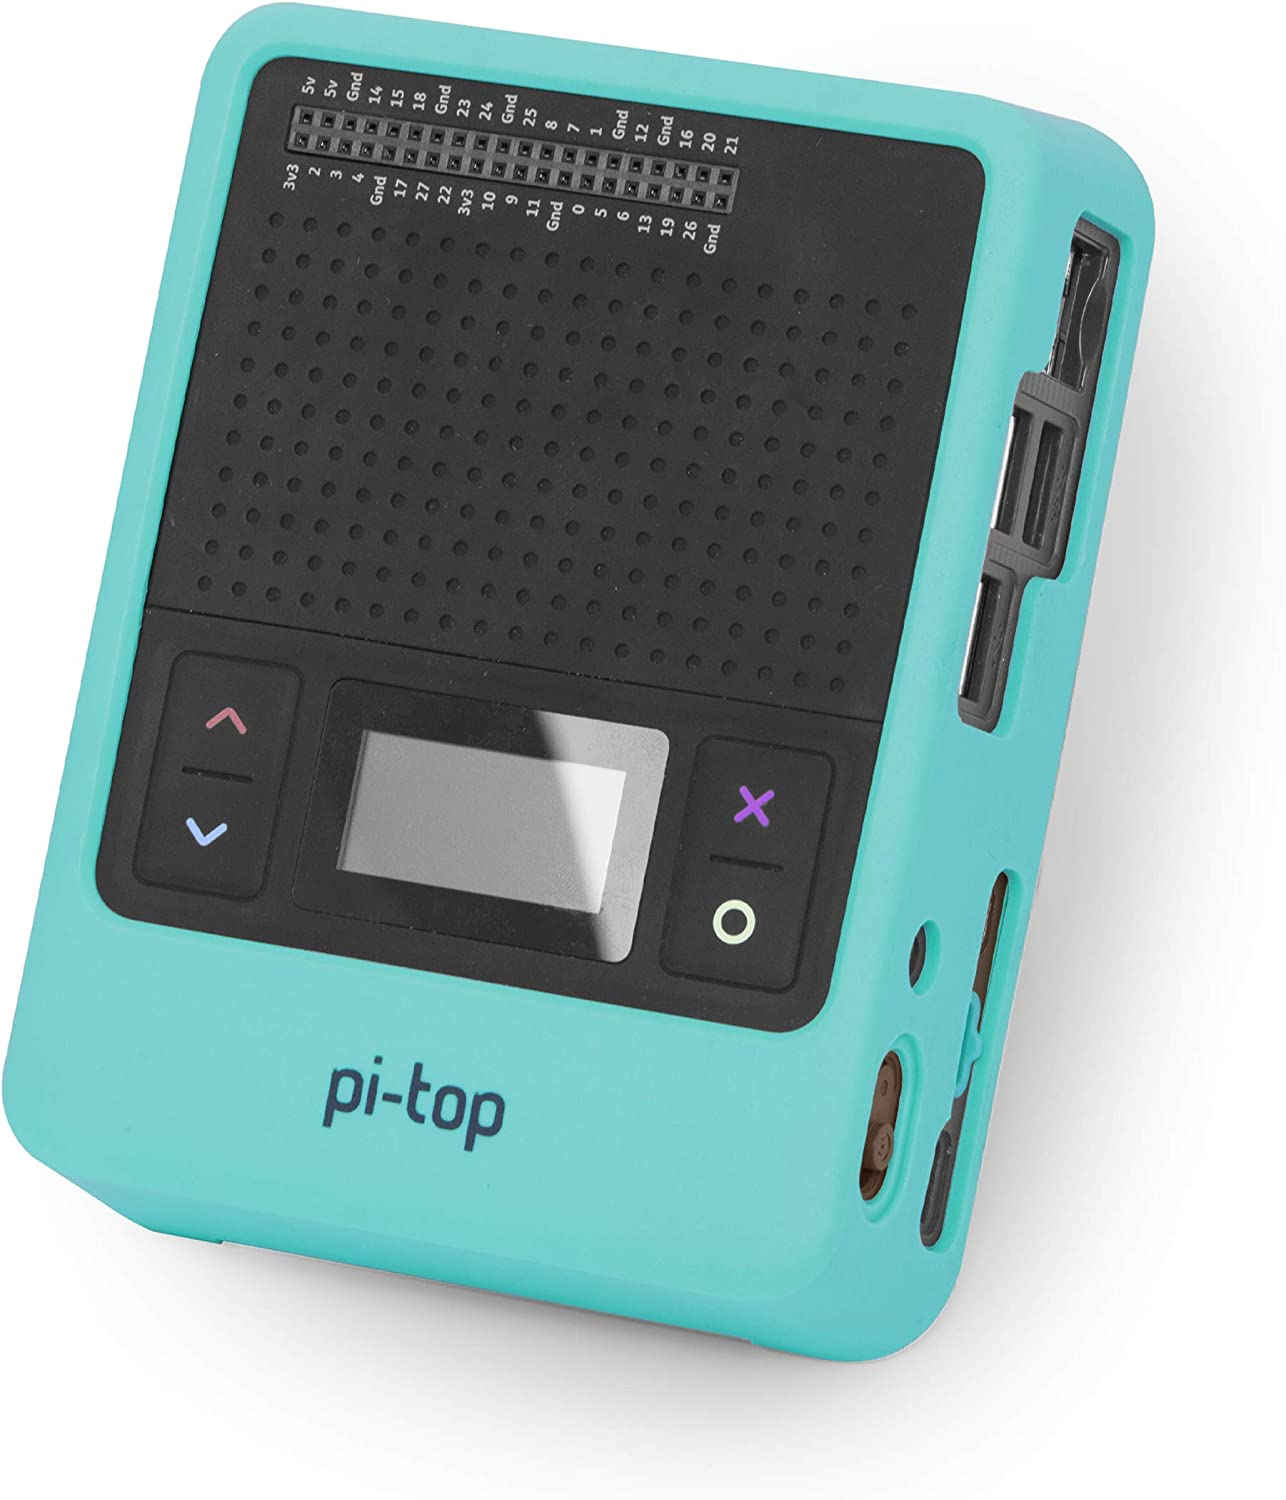 pi-top [4] Protective Case - Green Bump-Resistant Anti-Scratch Case for pi-top [4] Computer